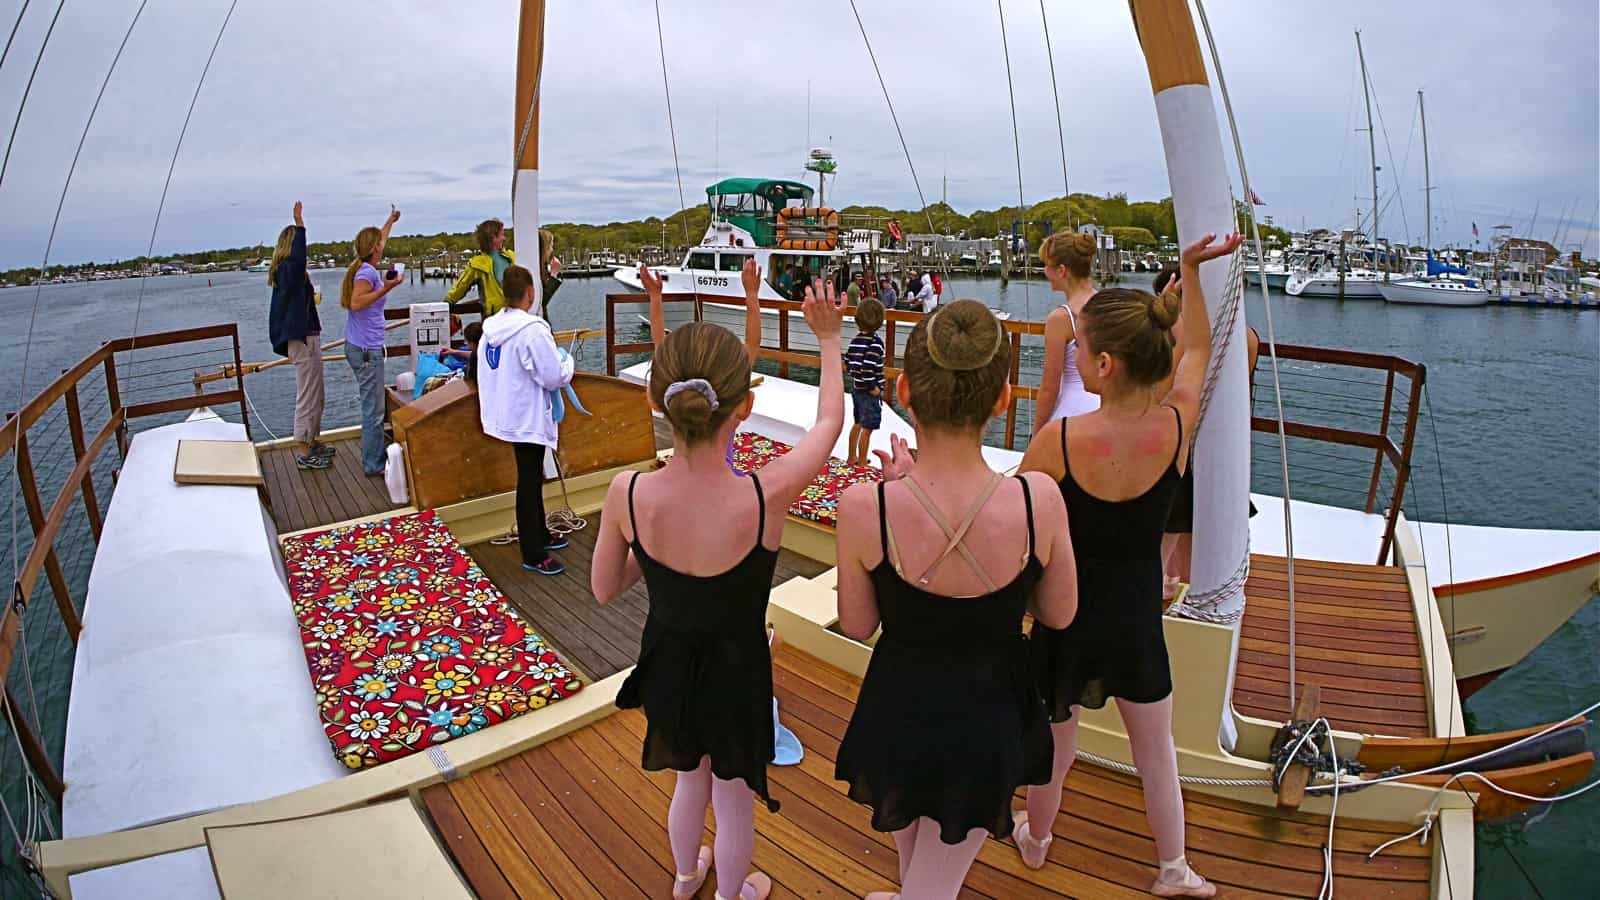 out-take from yesterday's HBTS photoshoot:  The Susie E II, piloted by Captain Burt Prince passes the charter sailing catamaran Mon Tiki, with Burt's wife Sharon, dancing daughters Sam and Jessica, and son Justin aboard. Photo by Sailing Montauk